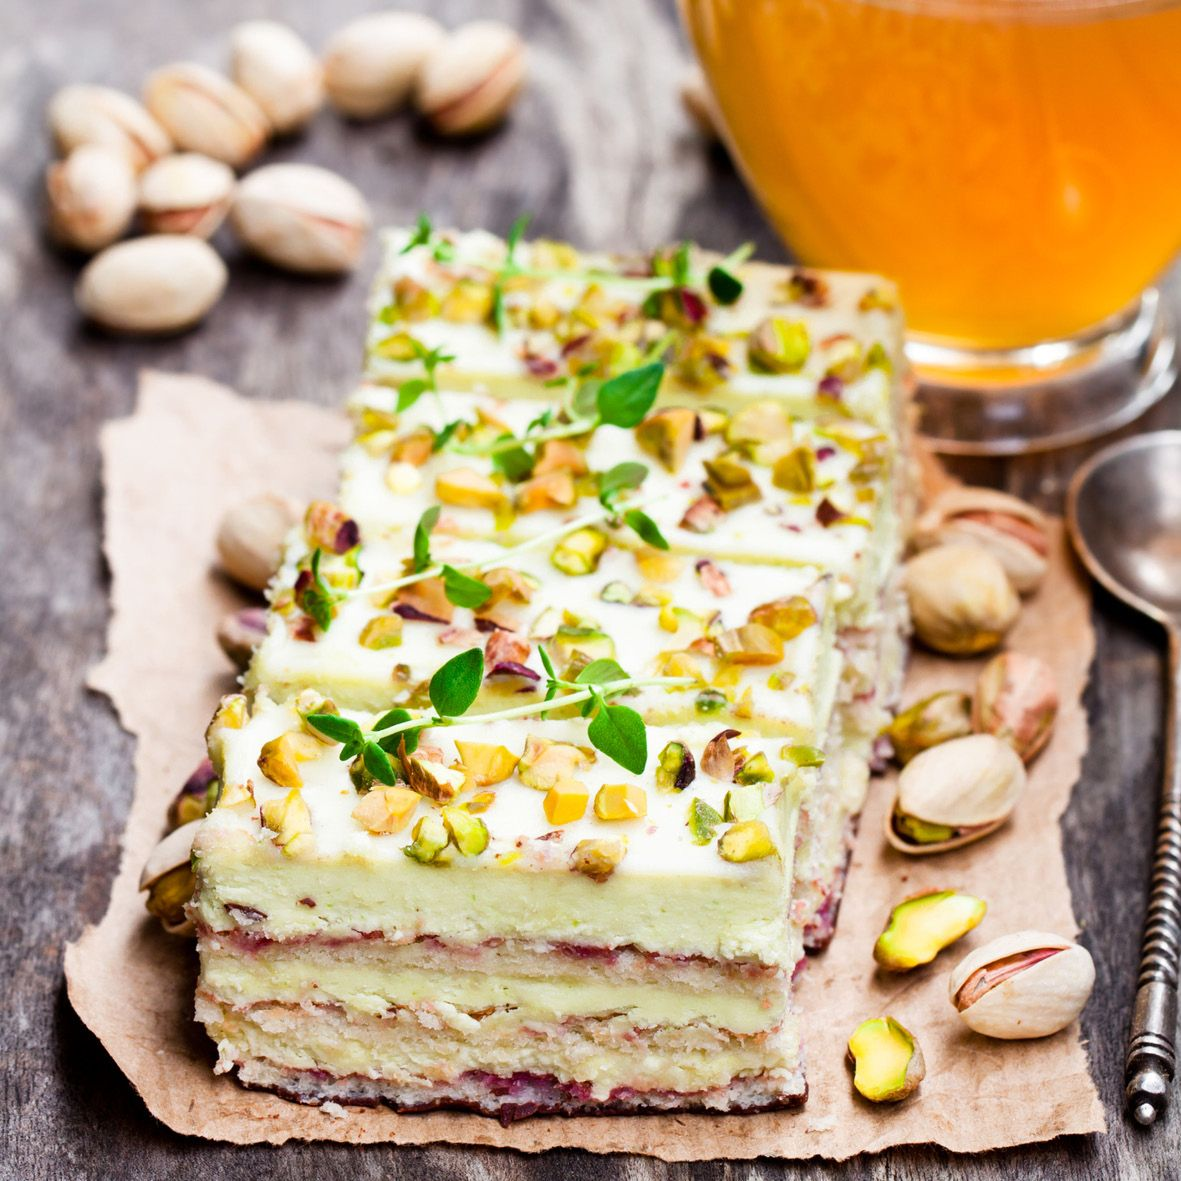 Pistachio and Green Tea cake.jpg